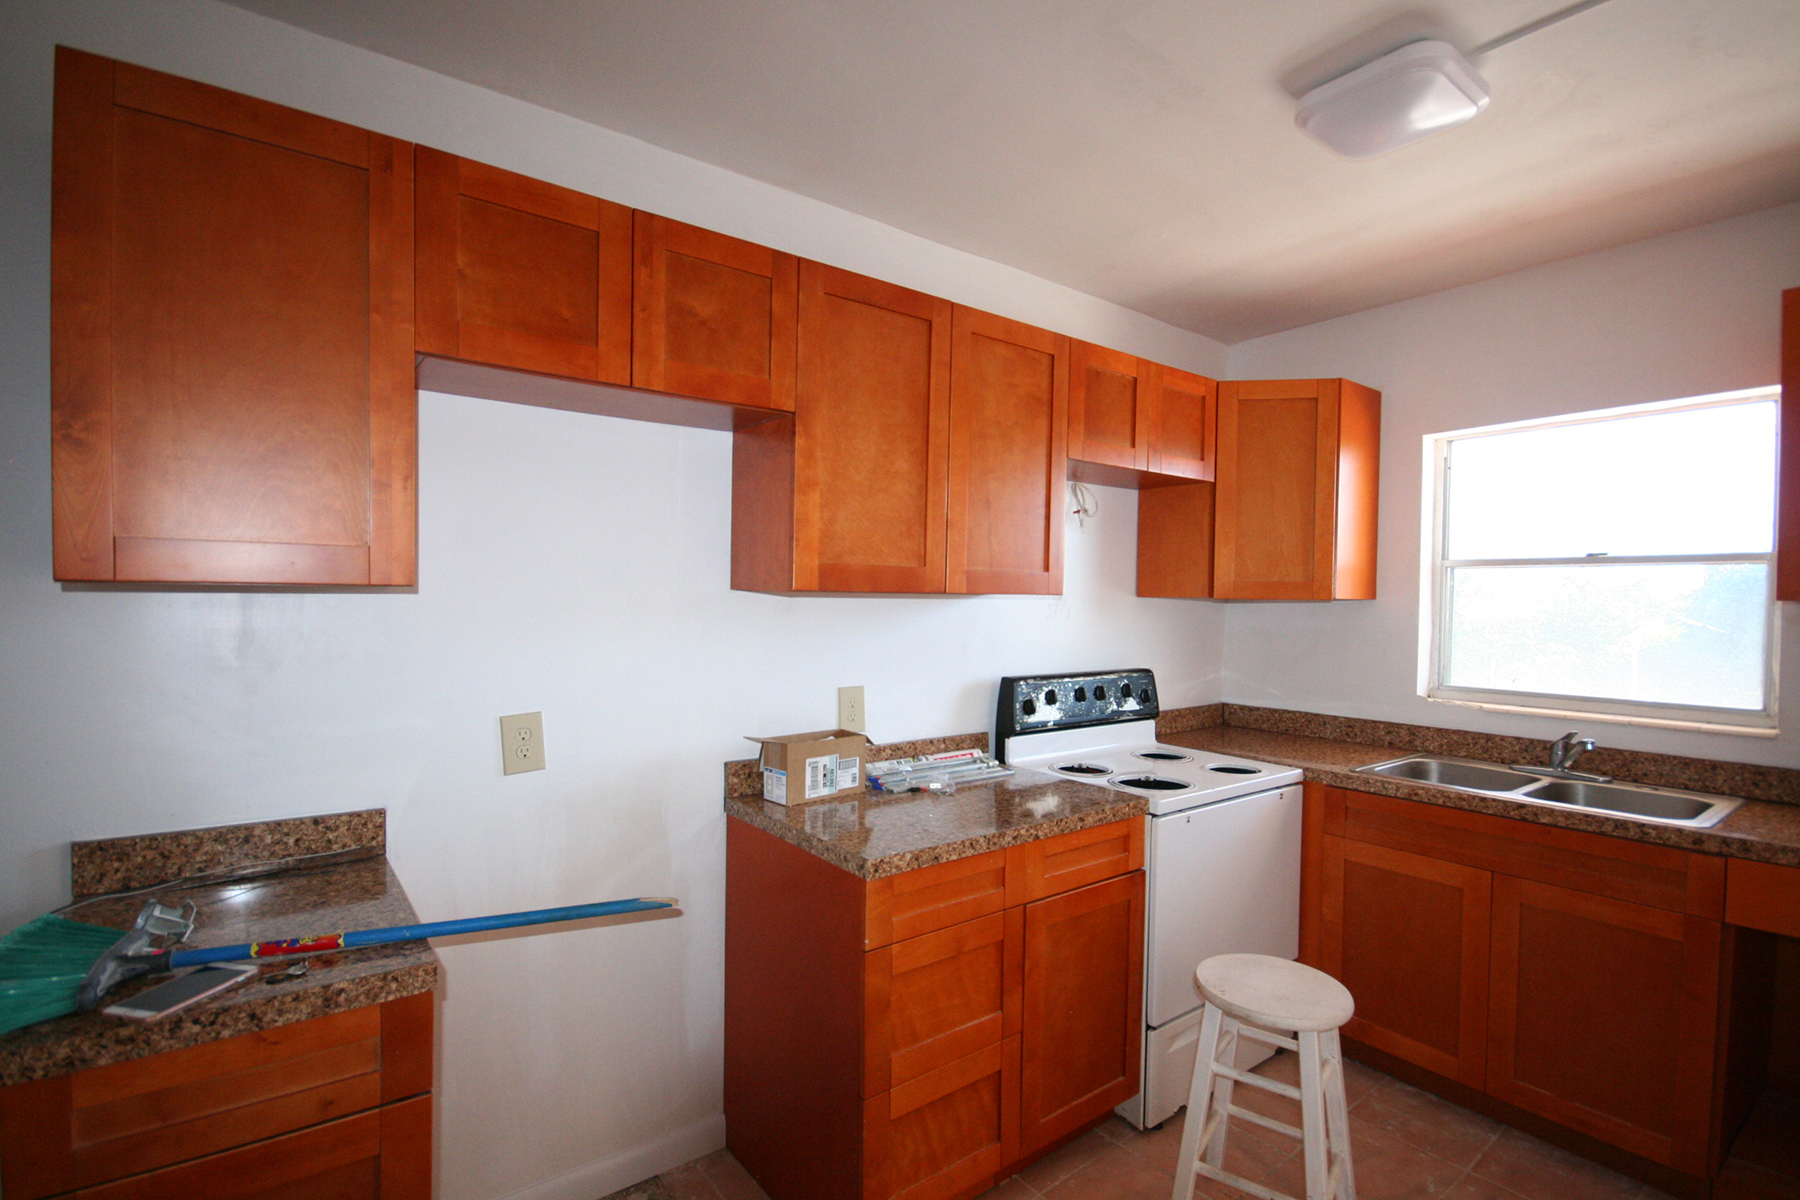 Additional photo for property listing at Charming Fixer Upper Condo Near Beach. Silver Cove, Grand Bahama, Bahamas